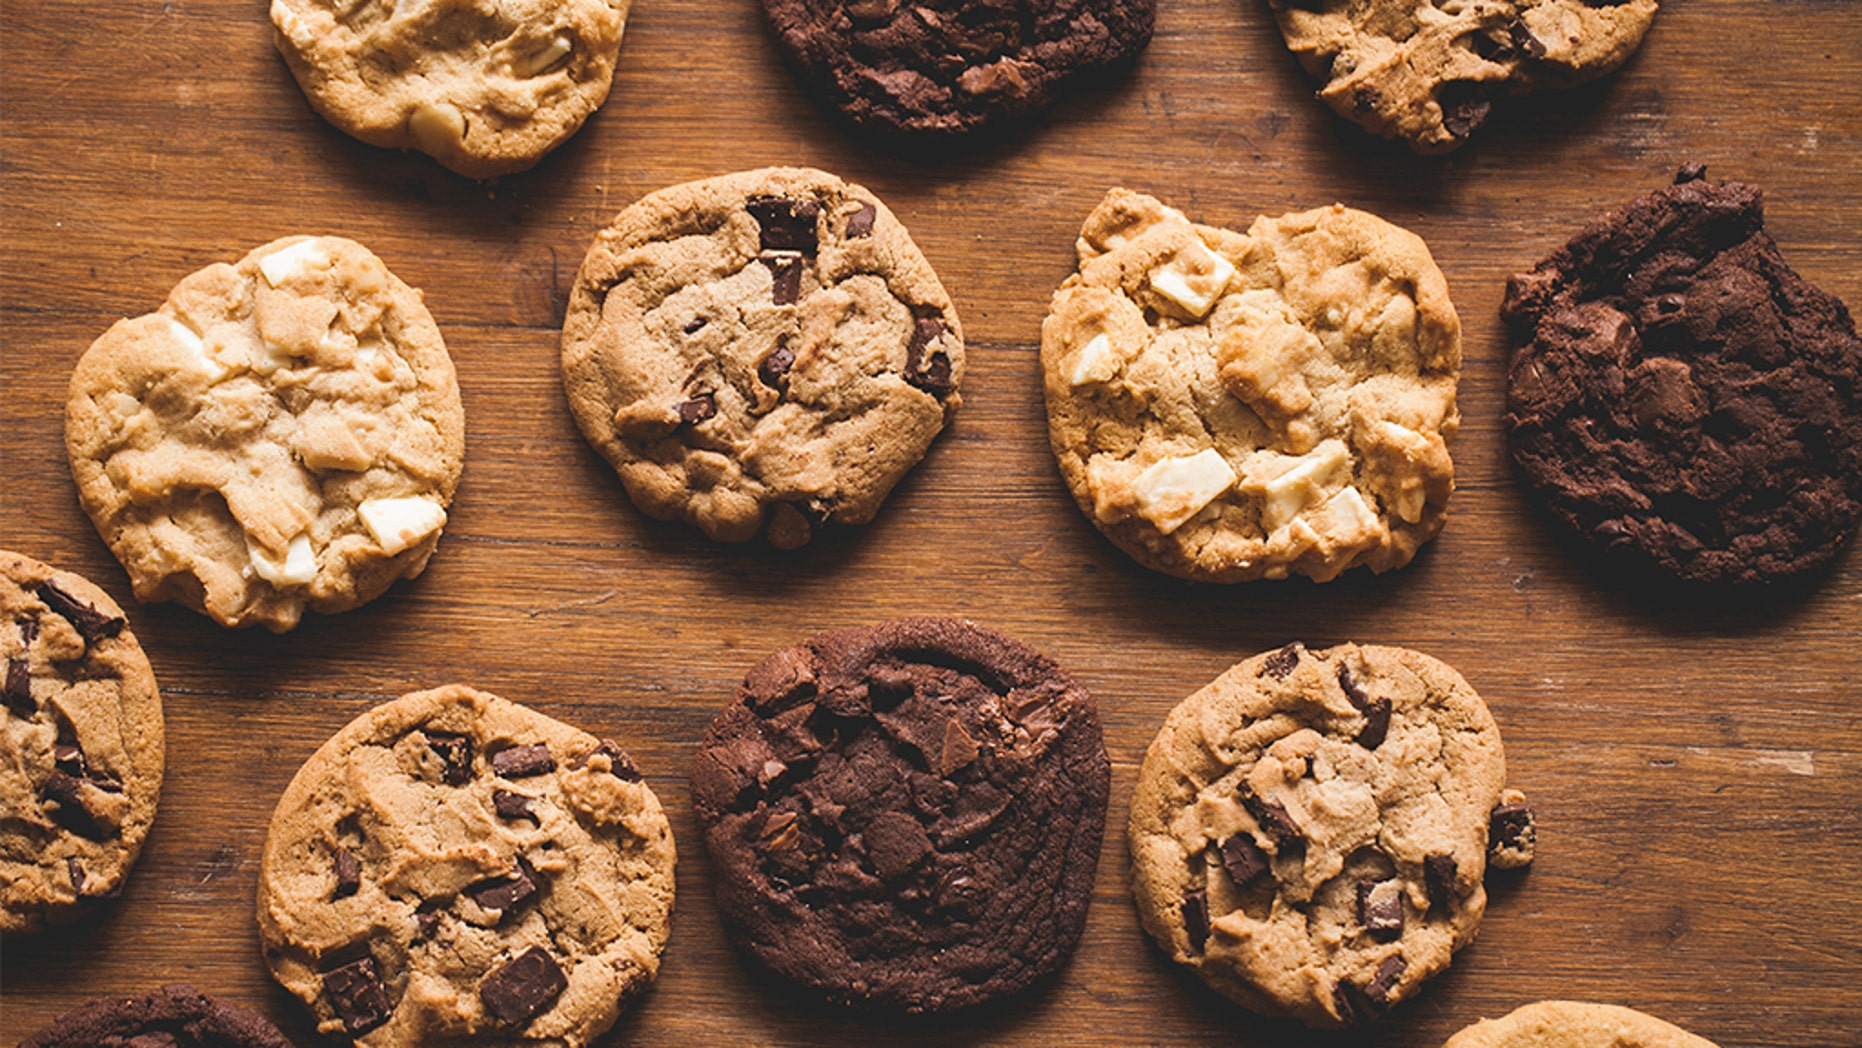 The CDC has warned that raw cookie dough may not be safe to eat.